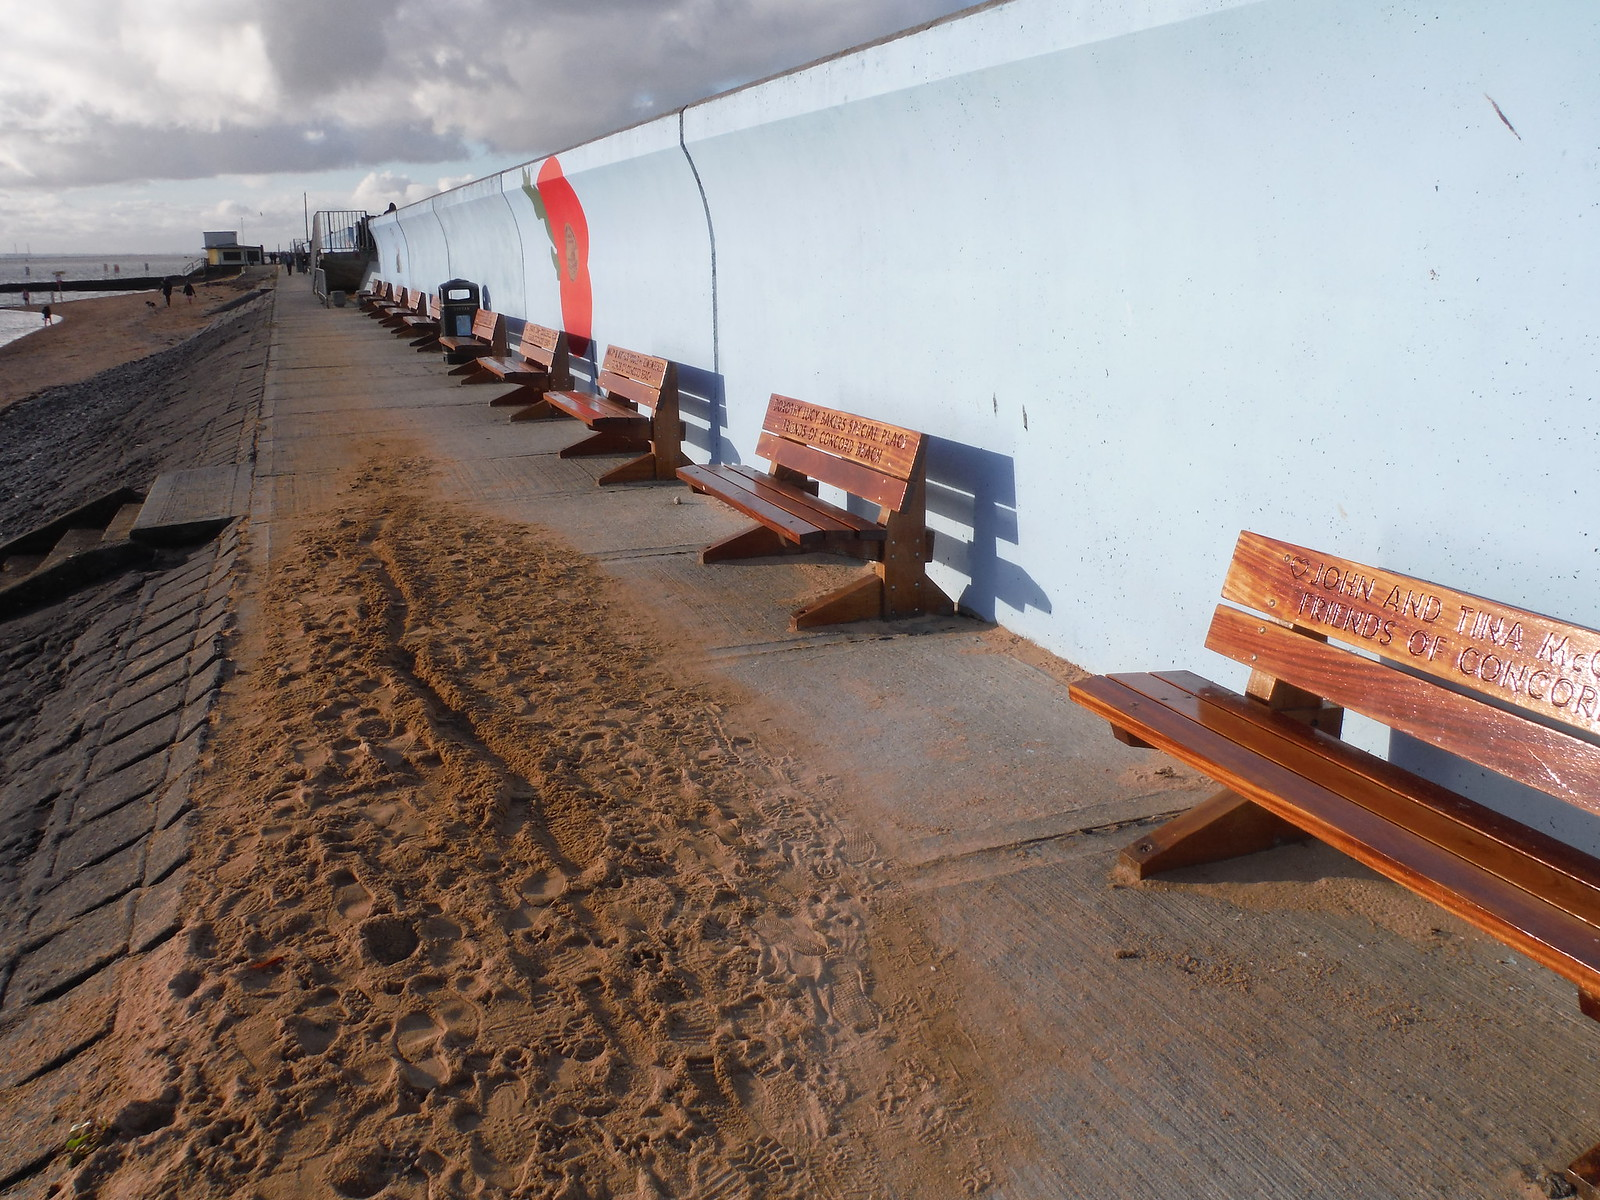 Benches on Concord Beach, Canvey Island SWC Walk 258 Benfleet Circular (via Canvey Island)